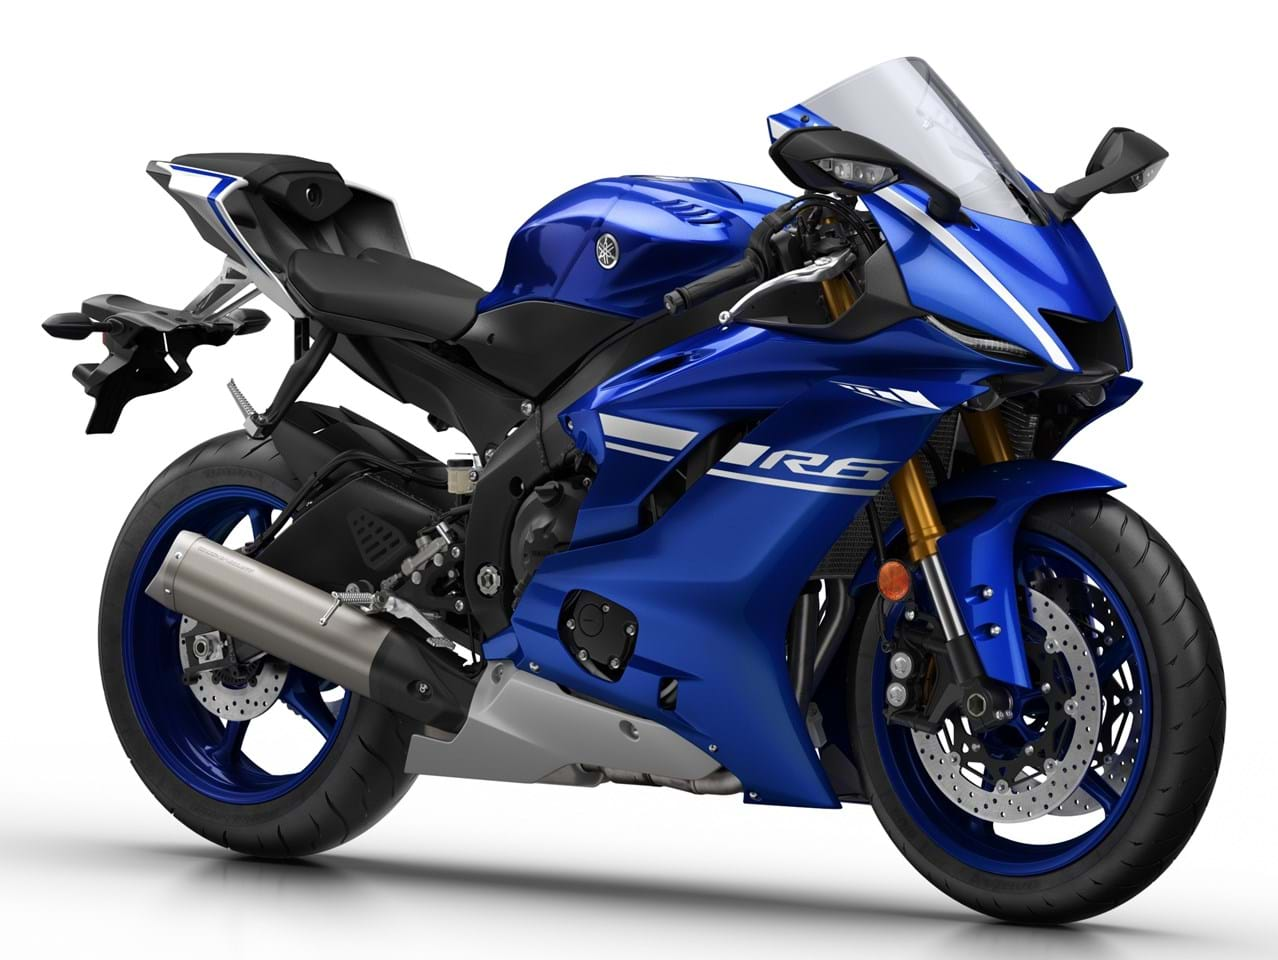 yamaha yzf r6 2017 on for sale price guide thebikemarket. Black Bedroom Furniture Sets. Home Design Ideas